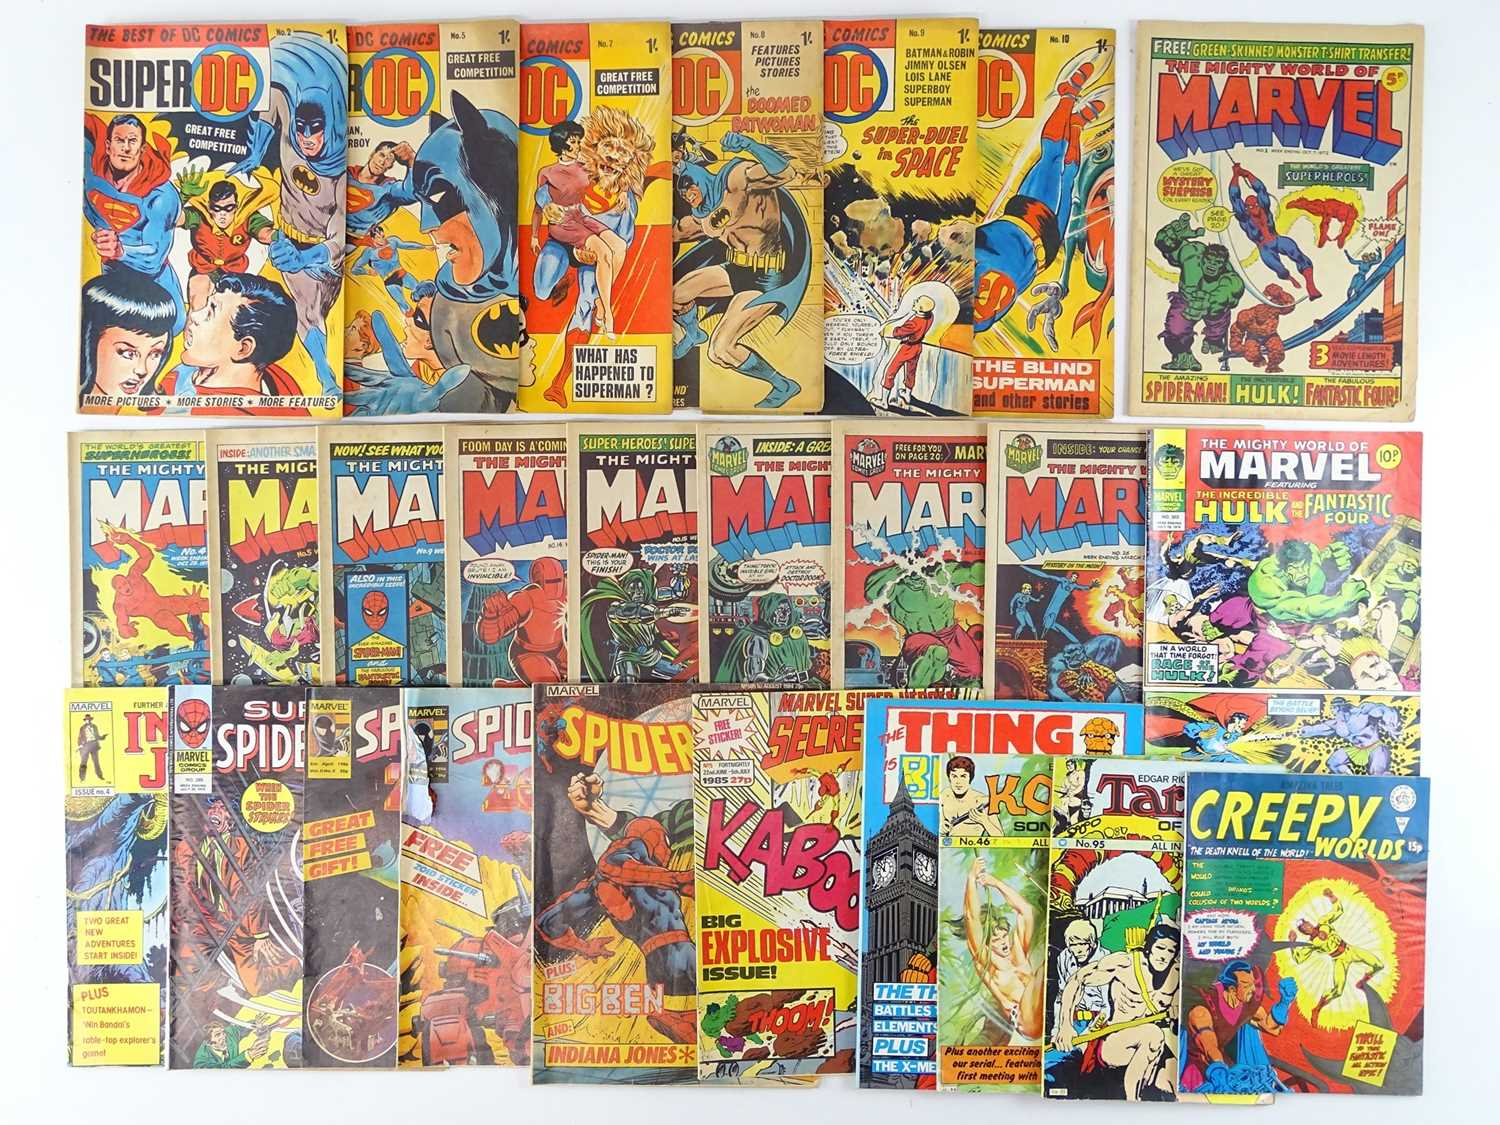 MIXED LOT OF BRITISH MARVEL, DC & OTHER COMICS - (26 in Lot) - (UK Price) - Includes BEST OF DC